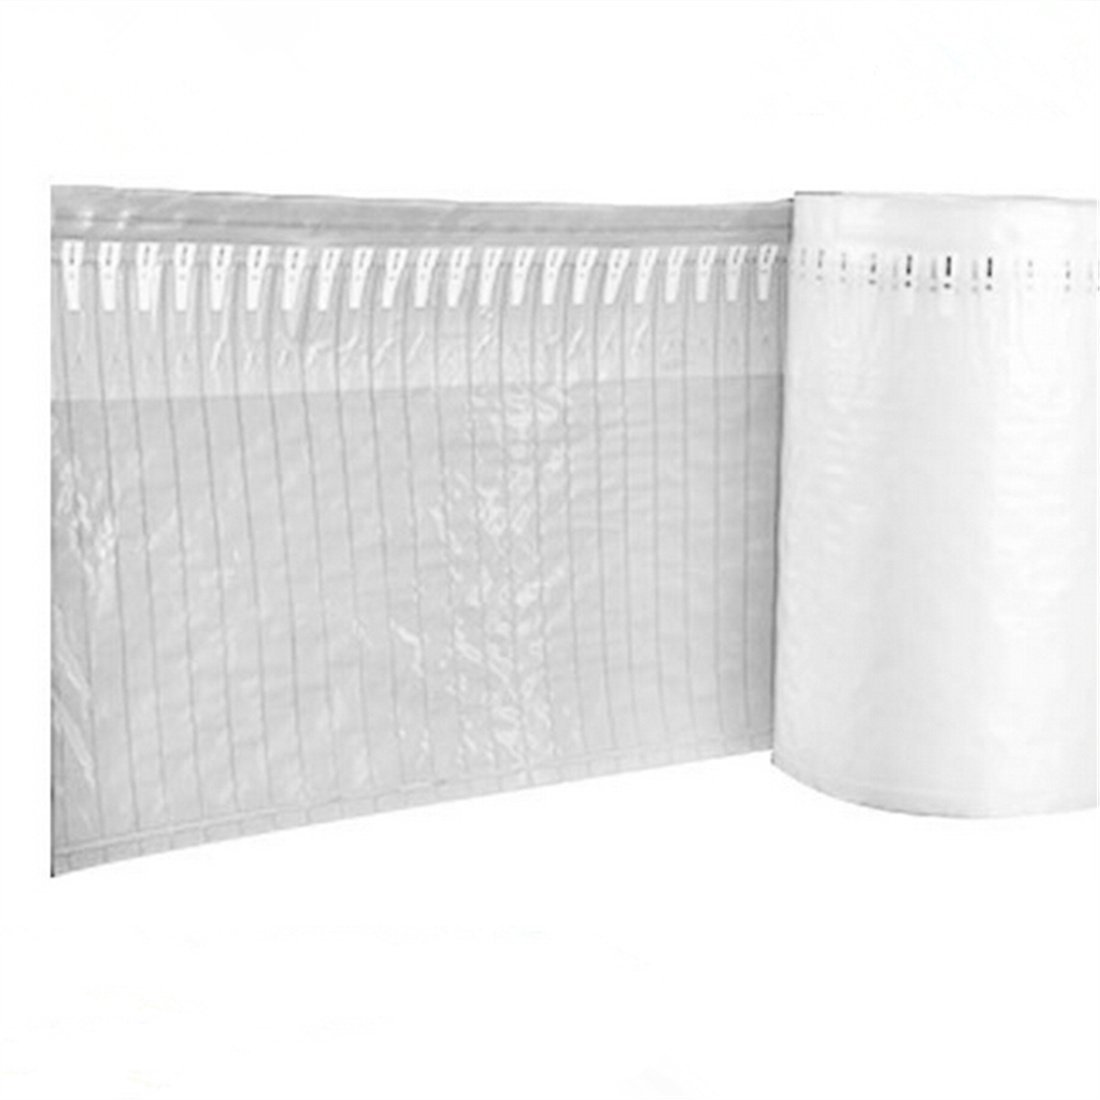 Air Inflatable Rolls Bag Packaging Material Cushion in Column Bag Bubble Wrap 40CM(H) with Pump 50m Angbo Trading